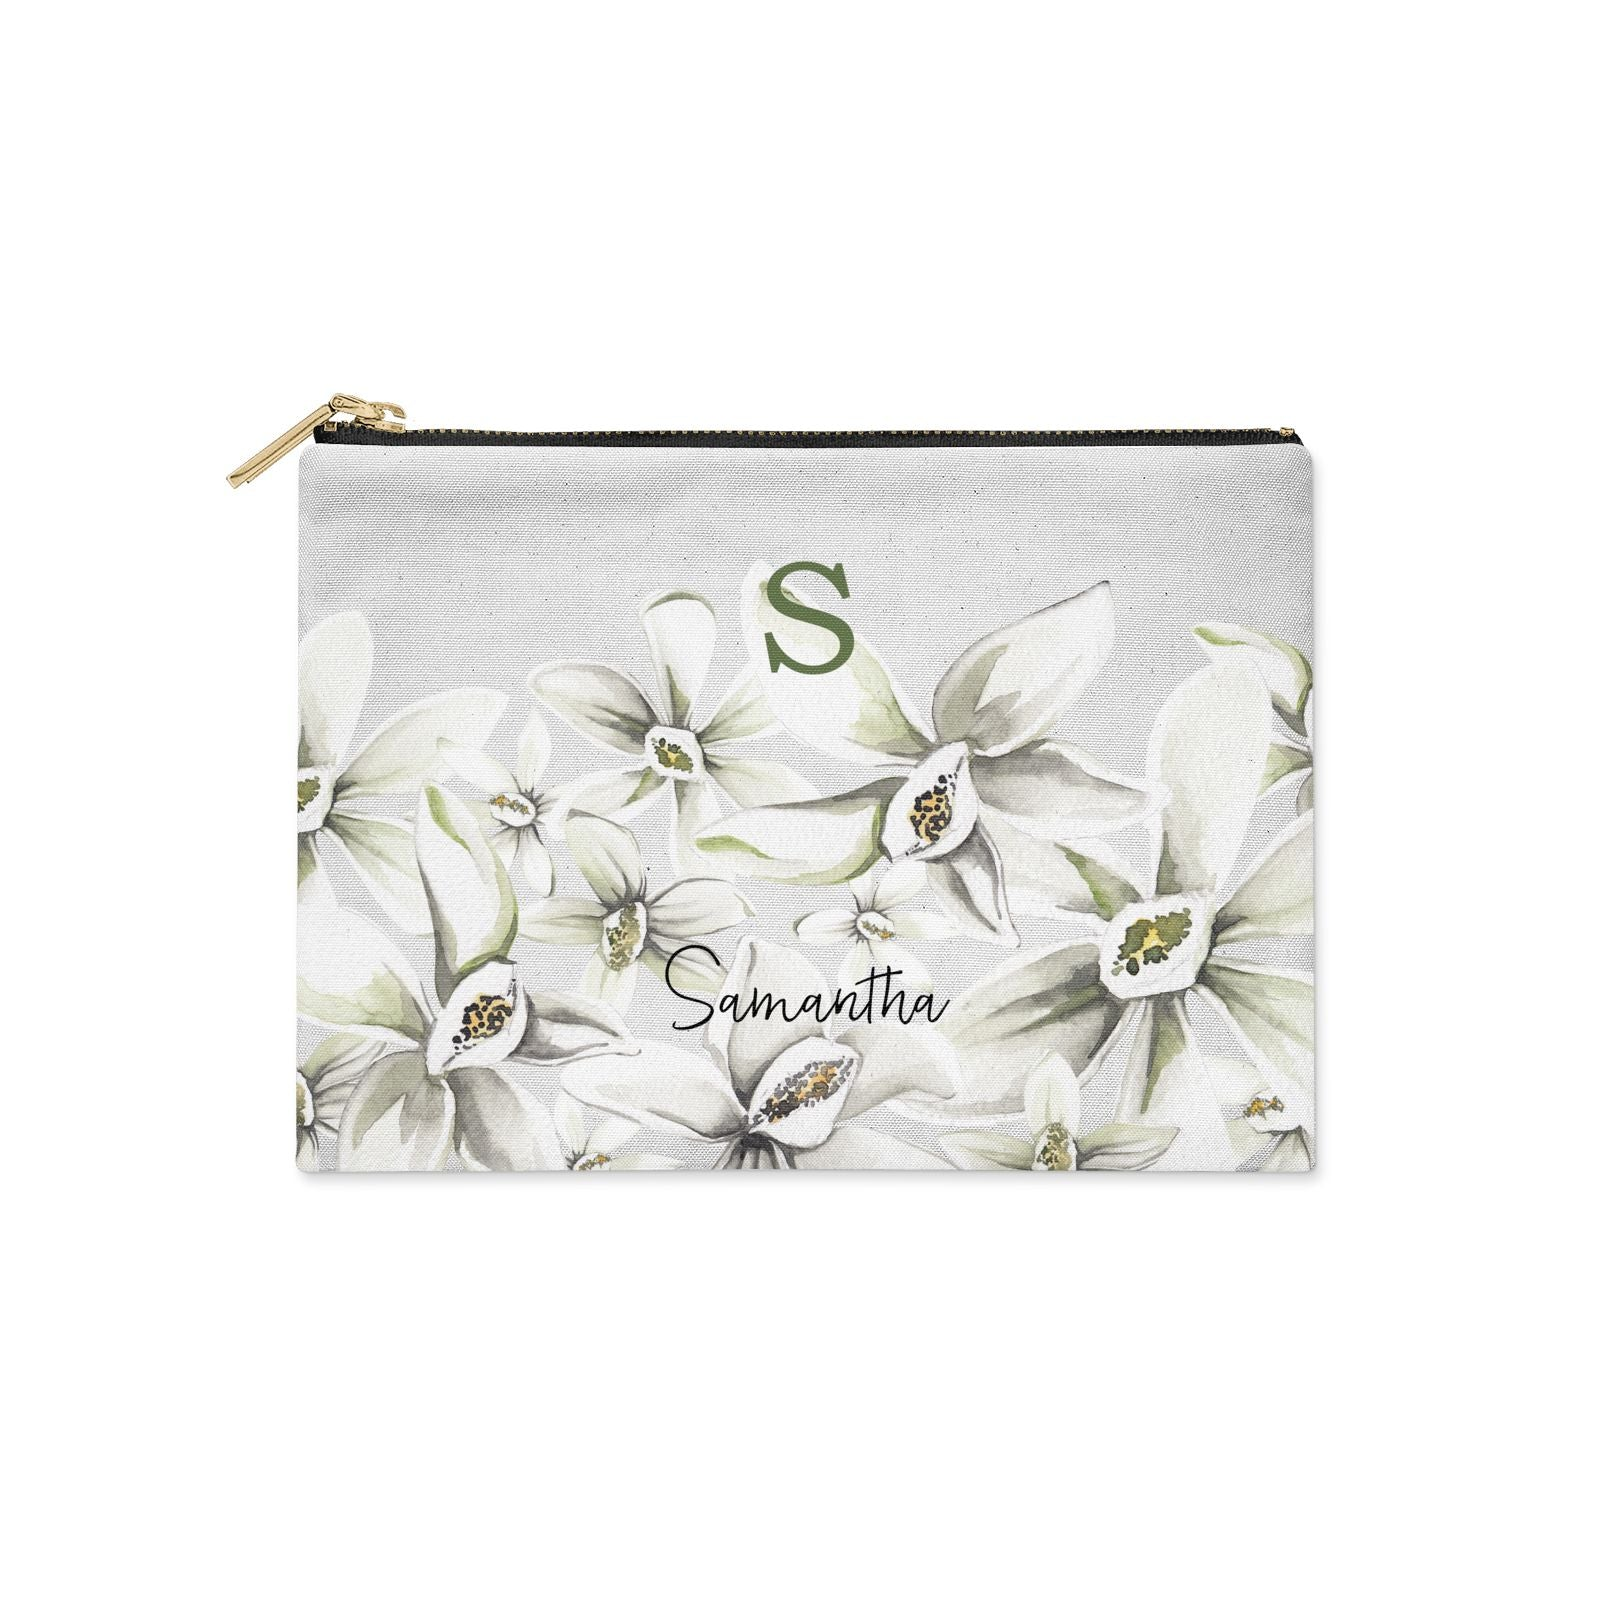 Personalised Orange Blossom Clutch Bag Zipper Pouch